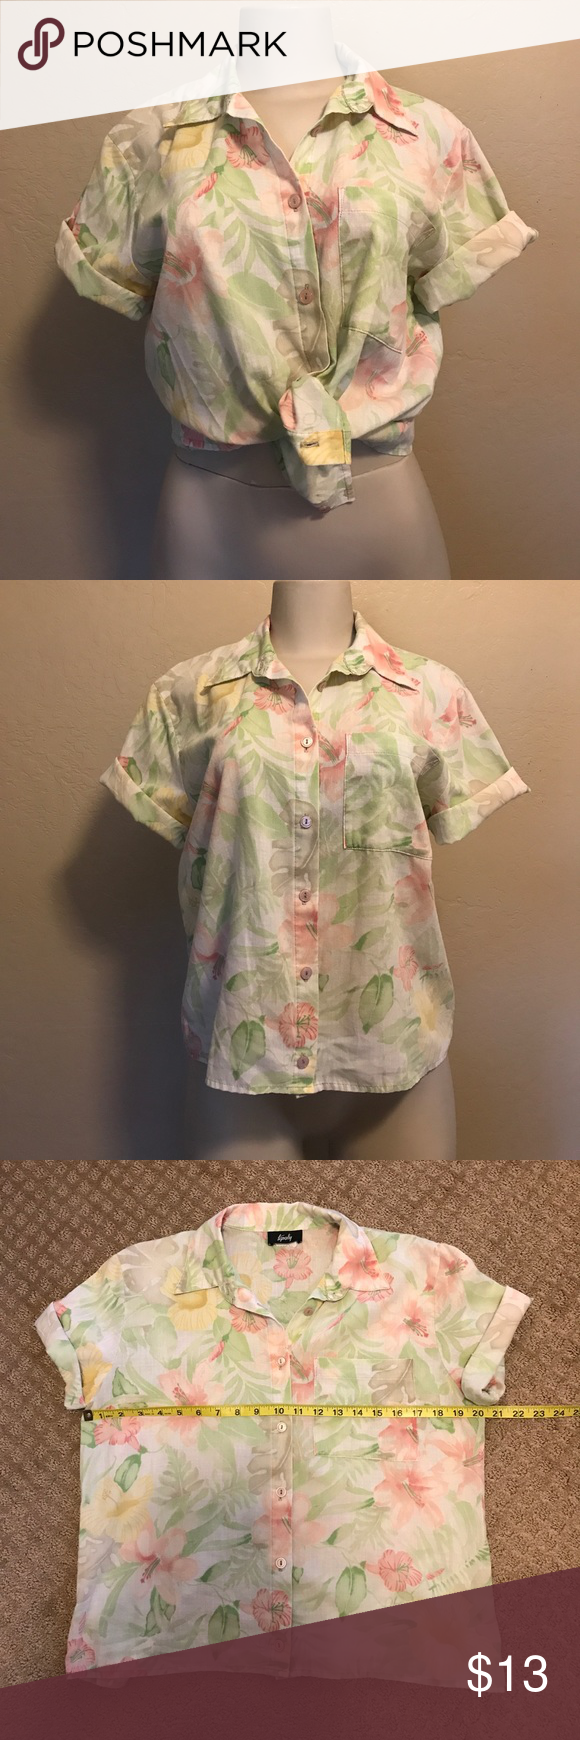 90s Vintage Tourist Mom Shirt Gently worn no flaws. Vintage Tops